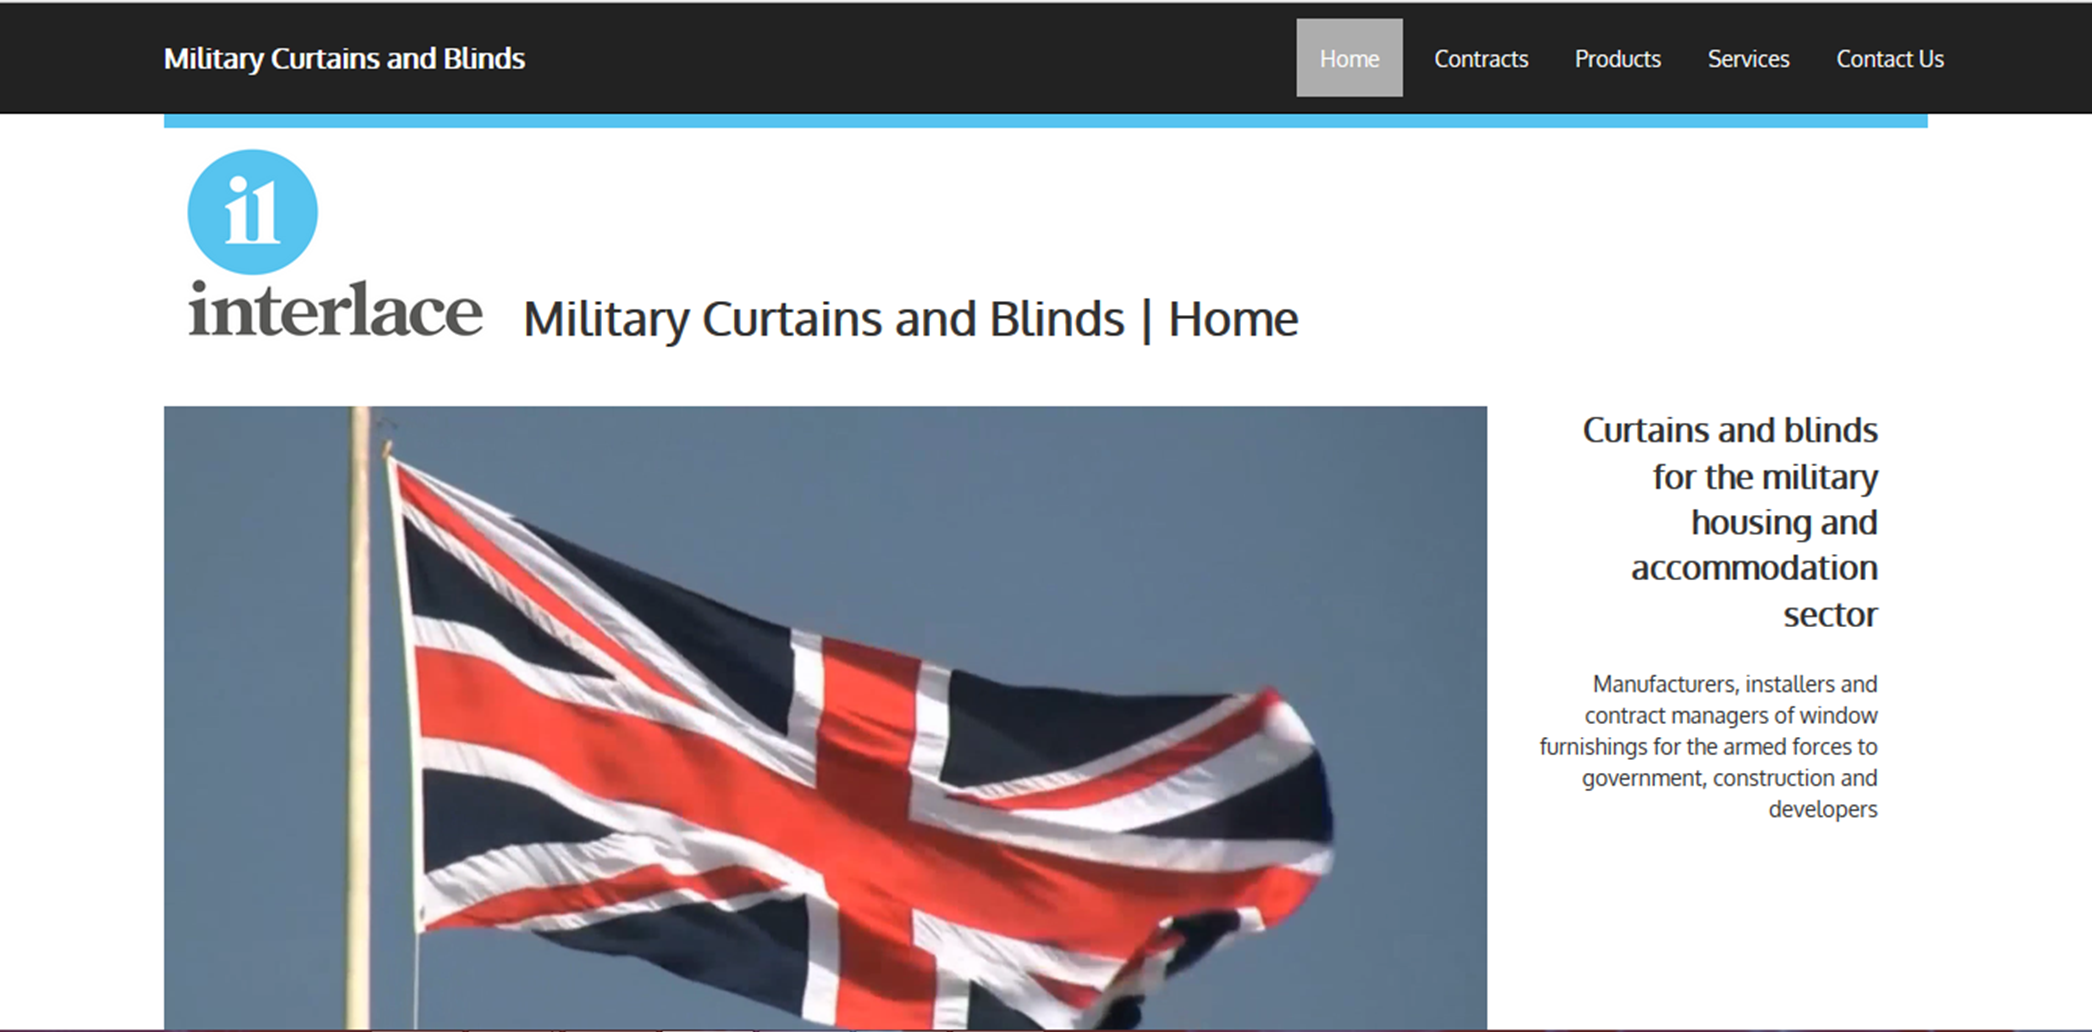 Military Curtains and Blinds Home page